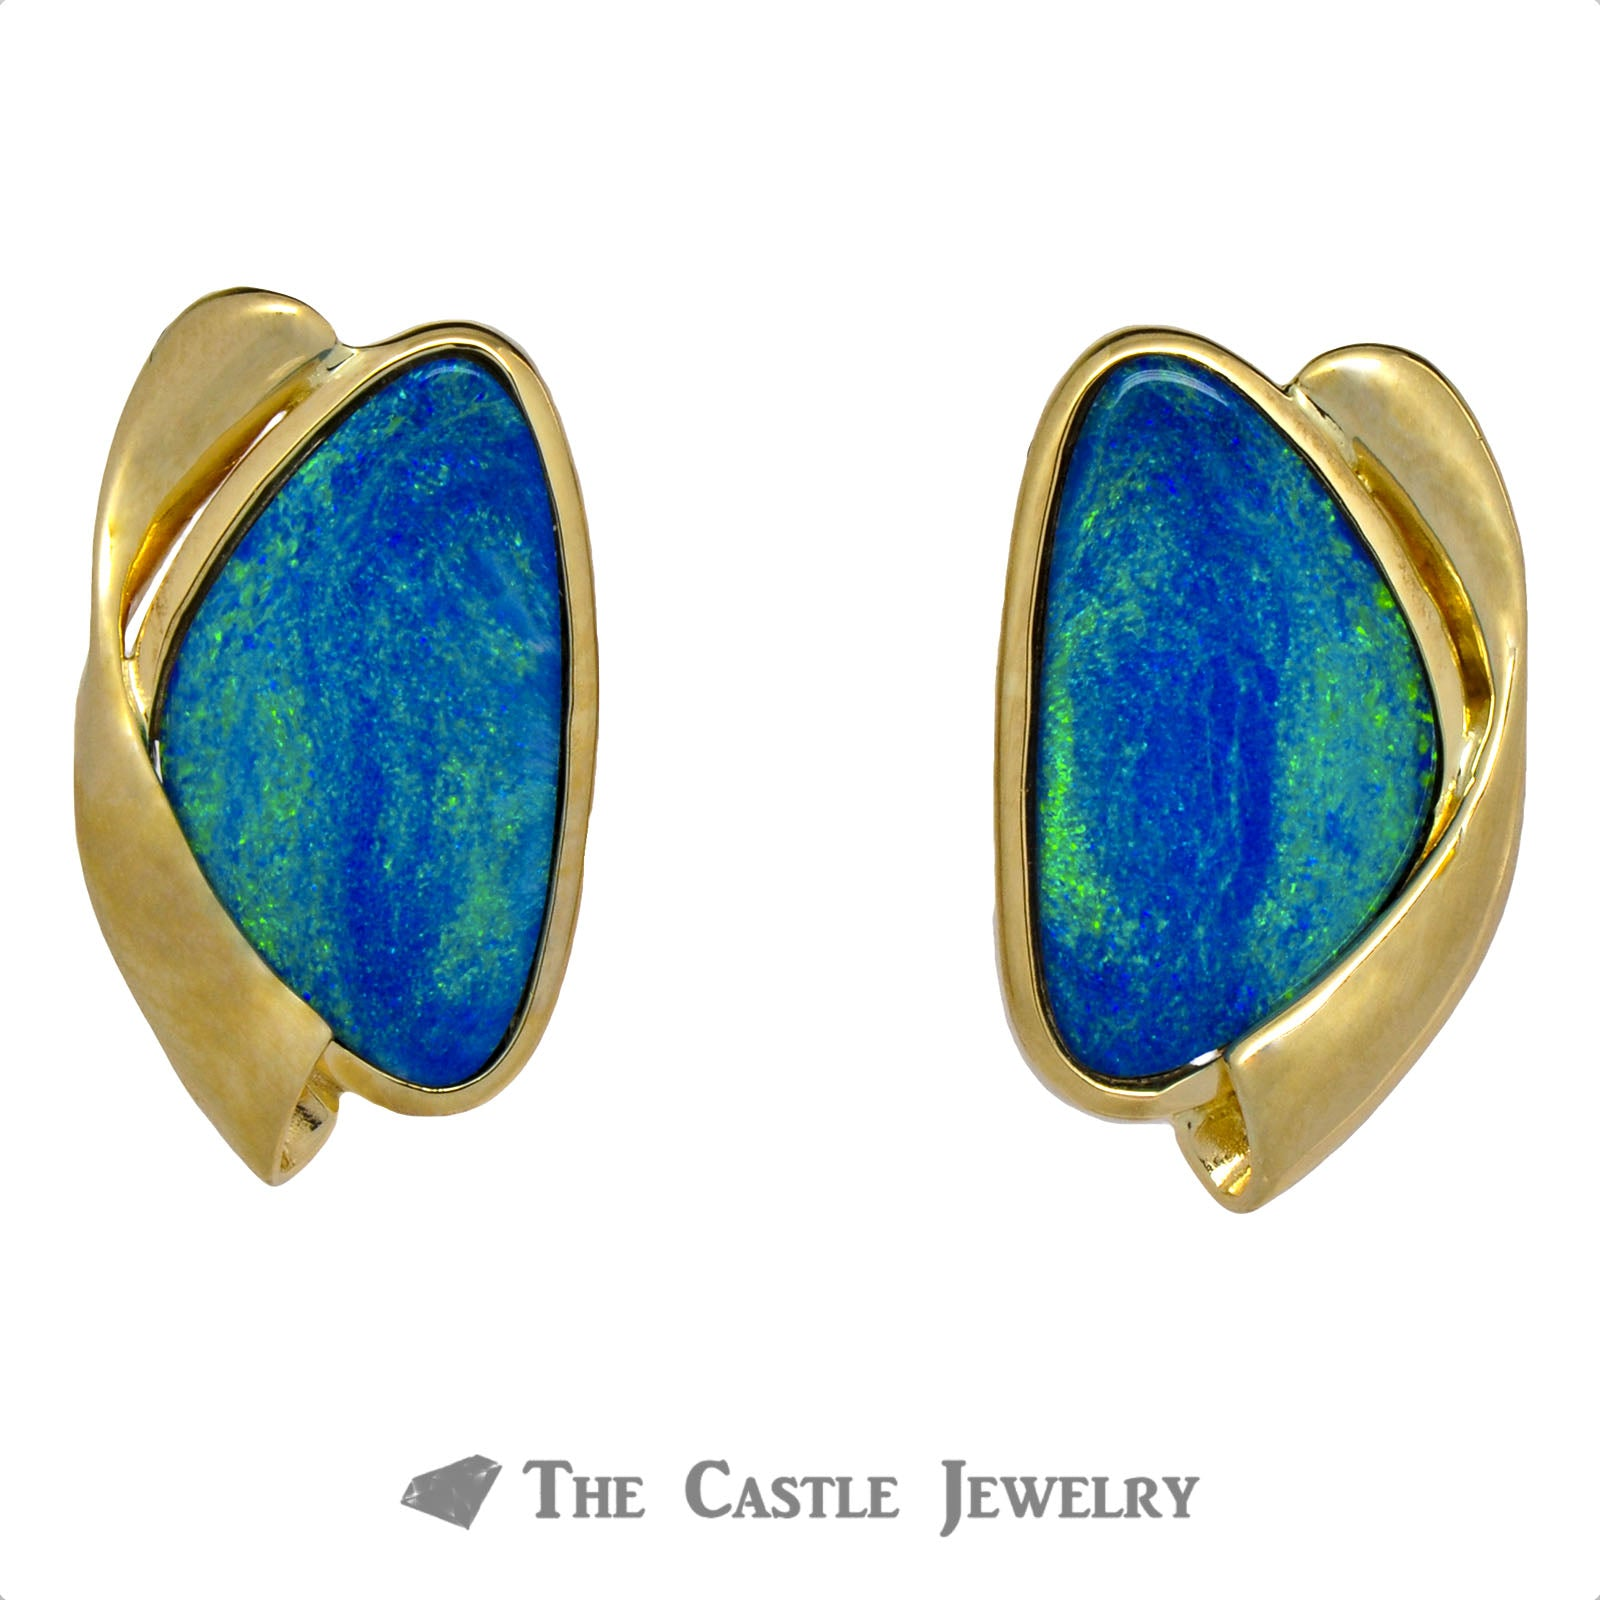 Stunning Black Opal Earrings with Twisted Hollow Gold Design